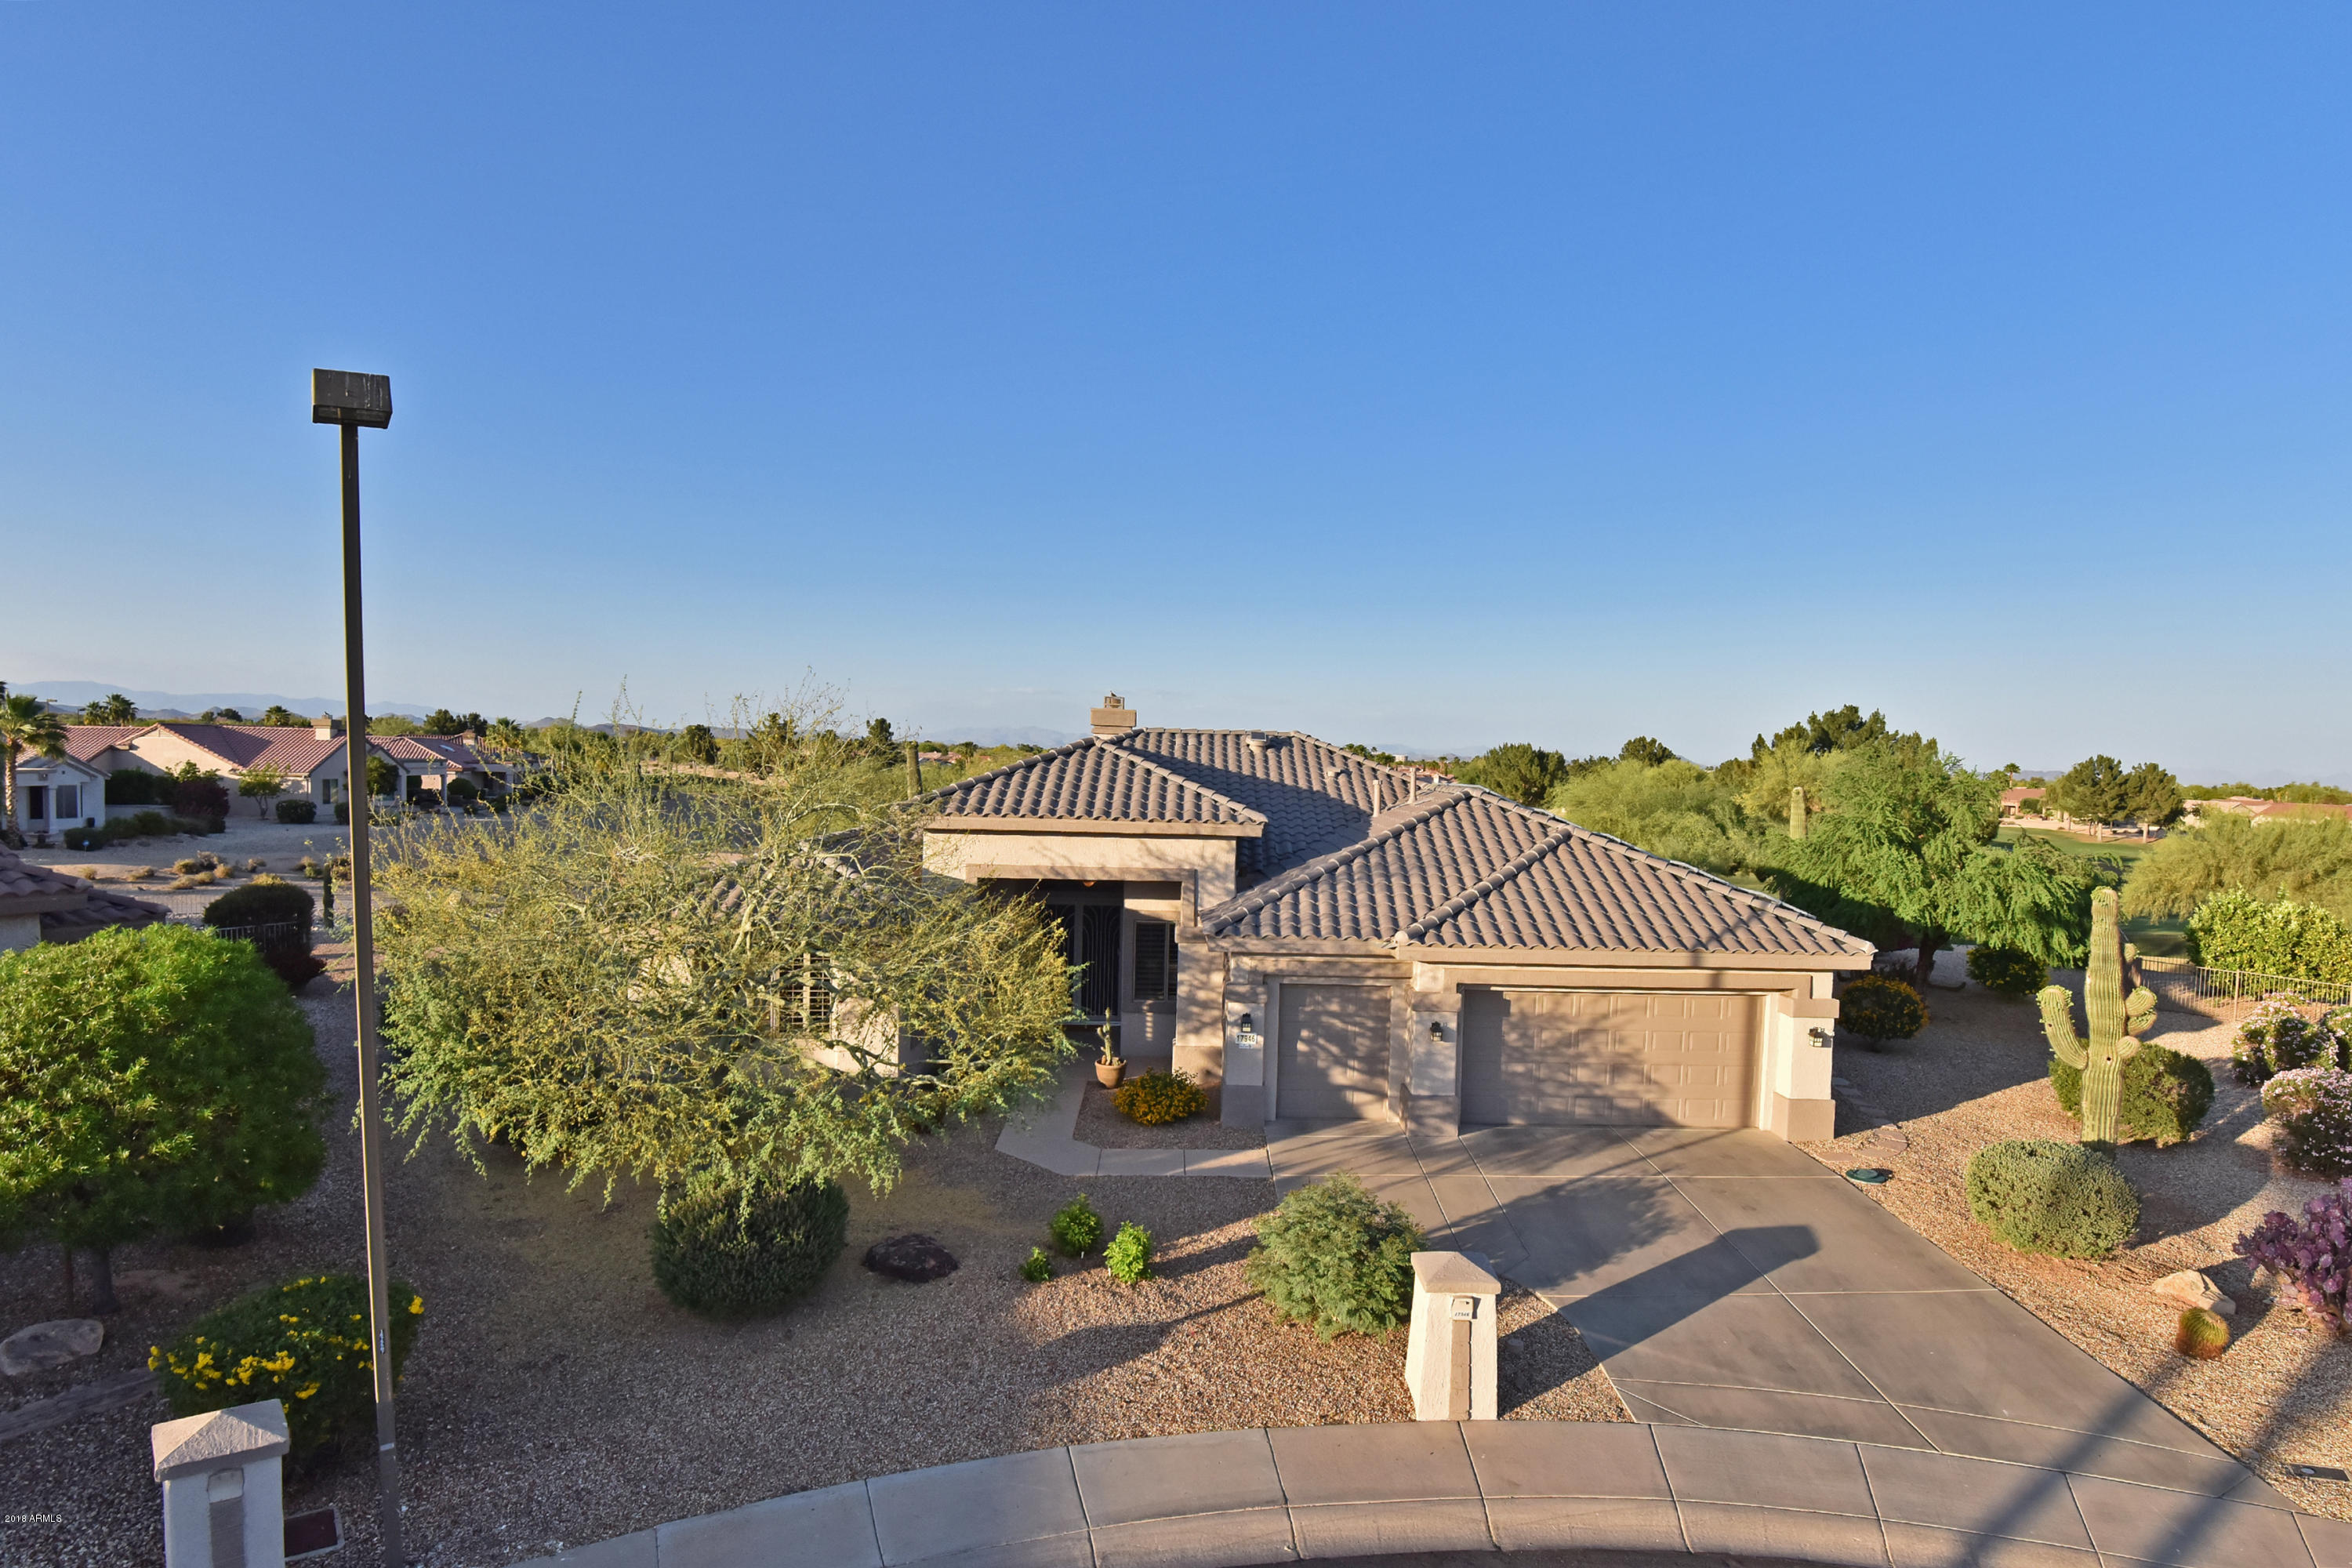 17946 N CATALINA COURT, SURPRISE, AZ 85374